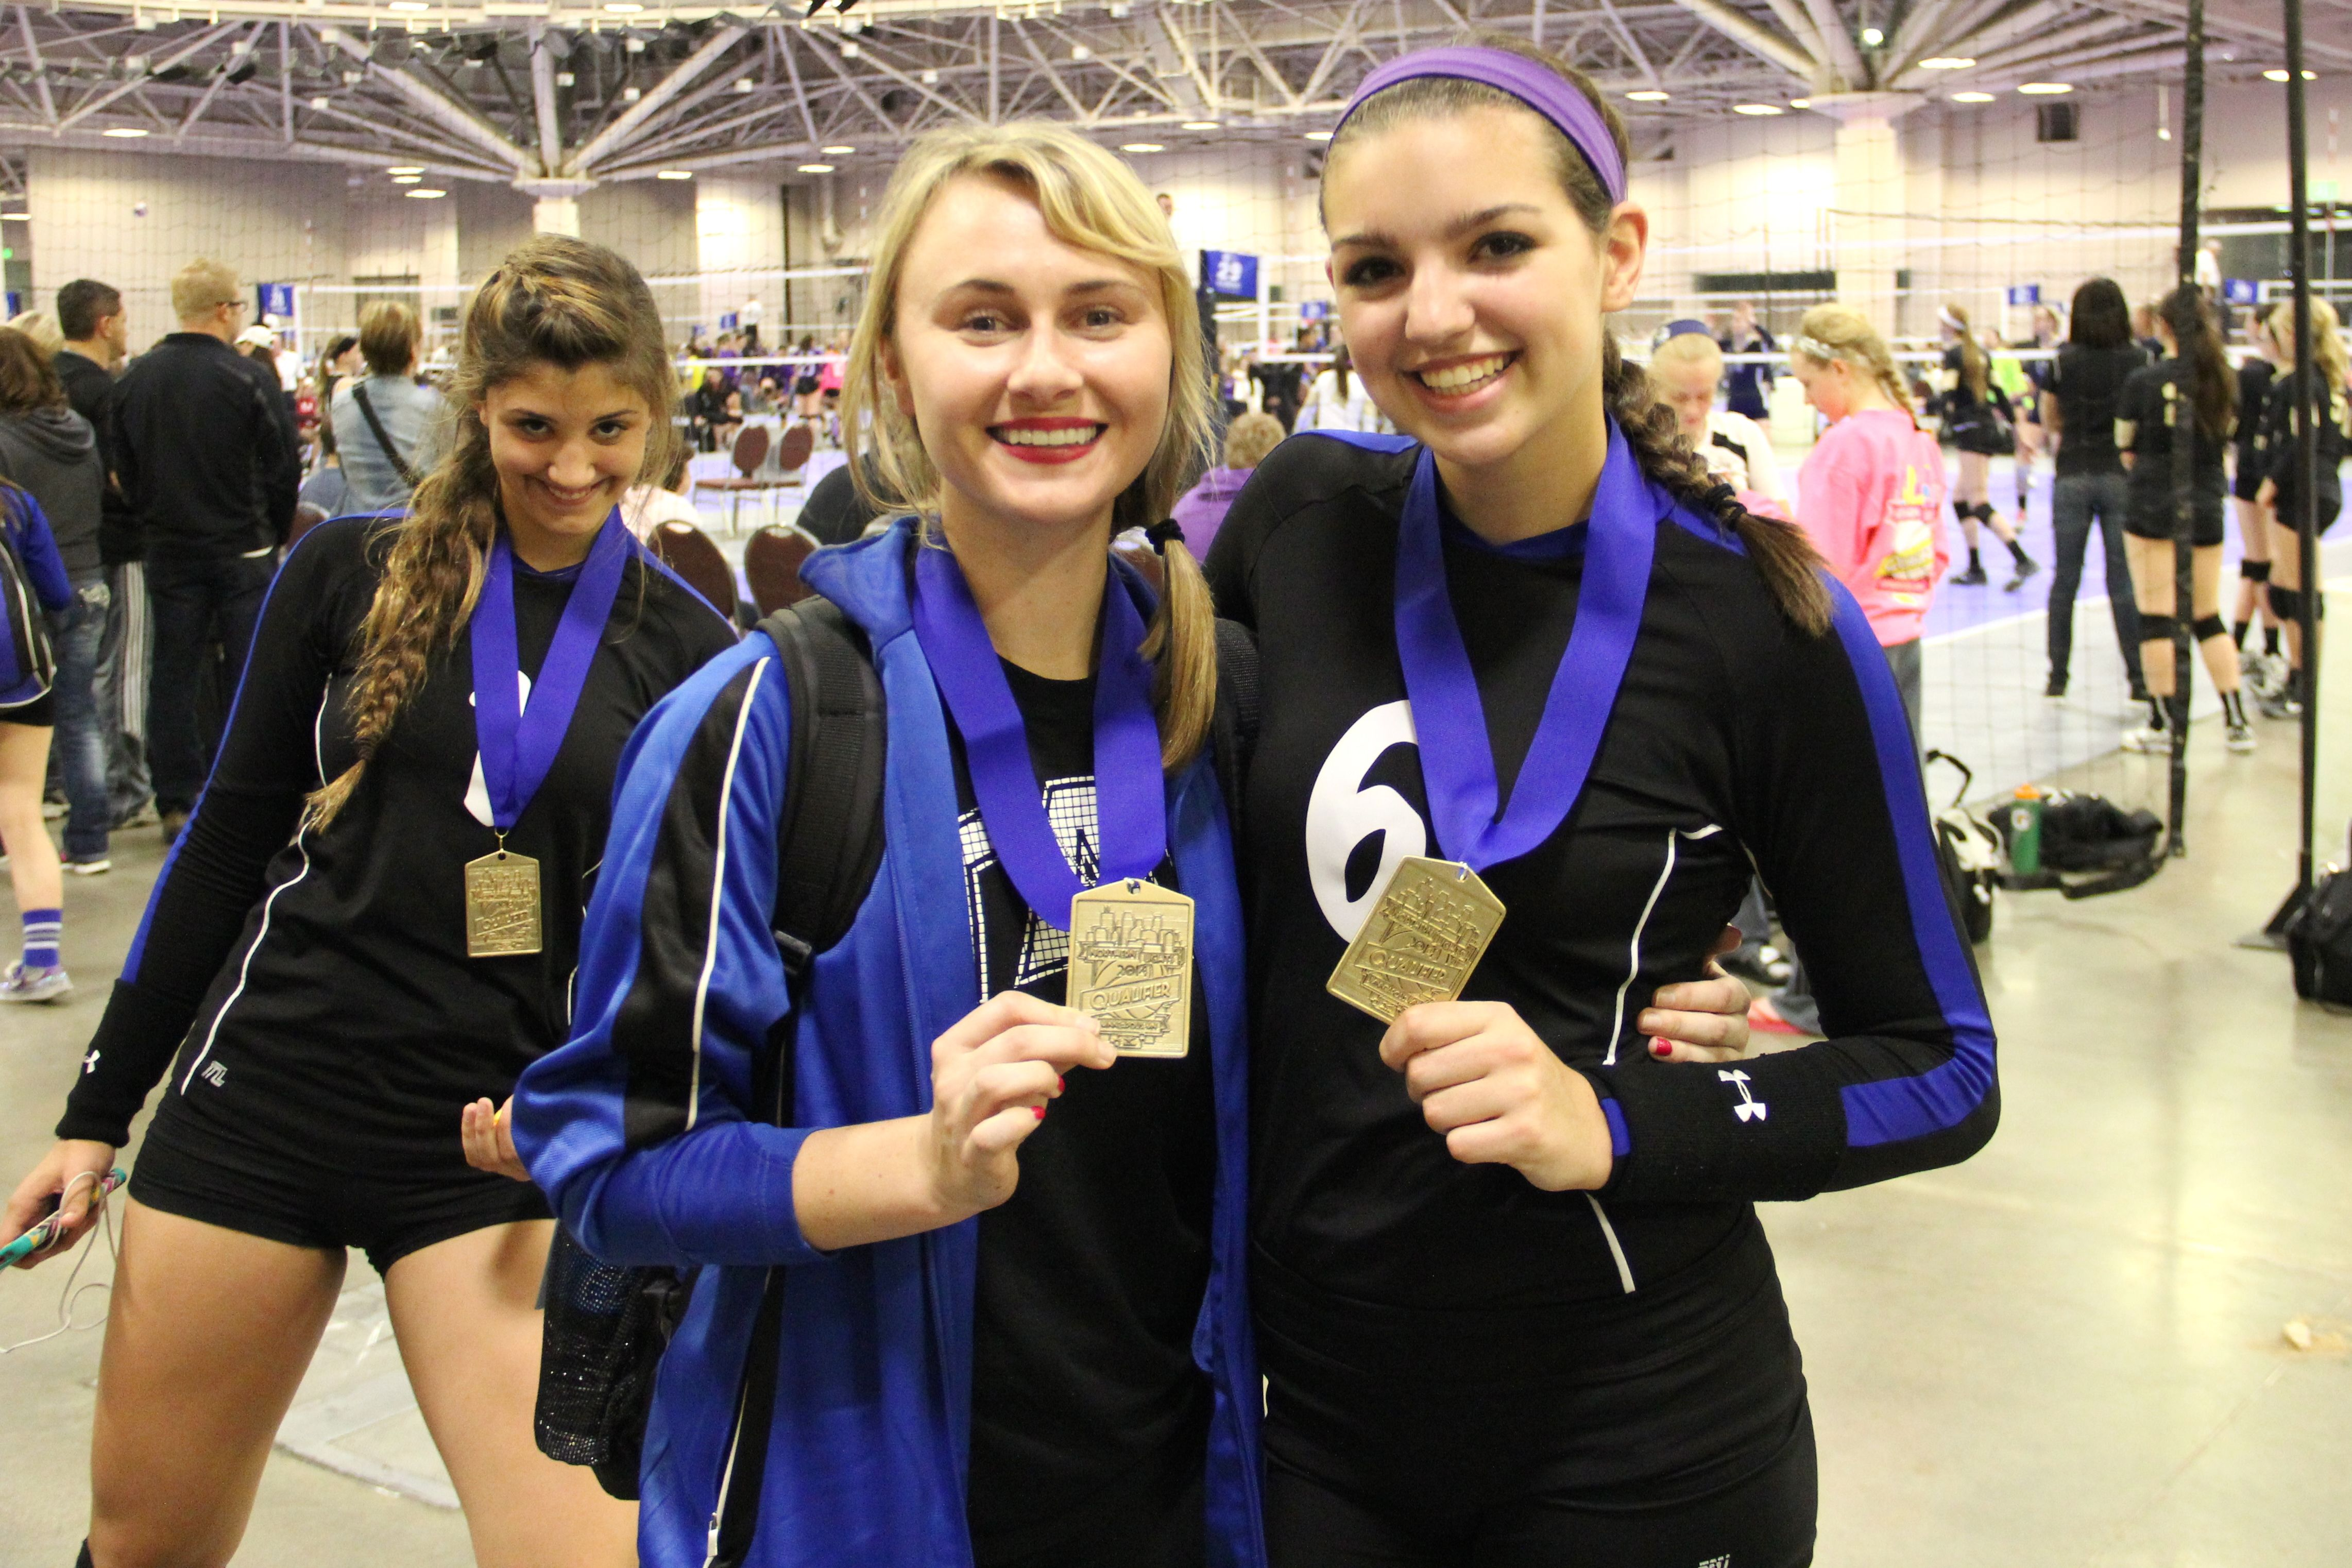 12 Pic With Your Coach Proud Of Those Medals With Our Club Coach Corinne Who Played For The North Northern Lights Volleyball Usa Volleyball Volleyball Clubs